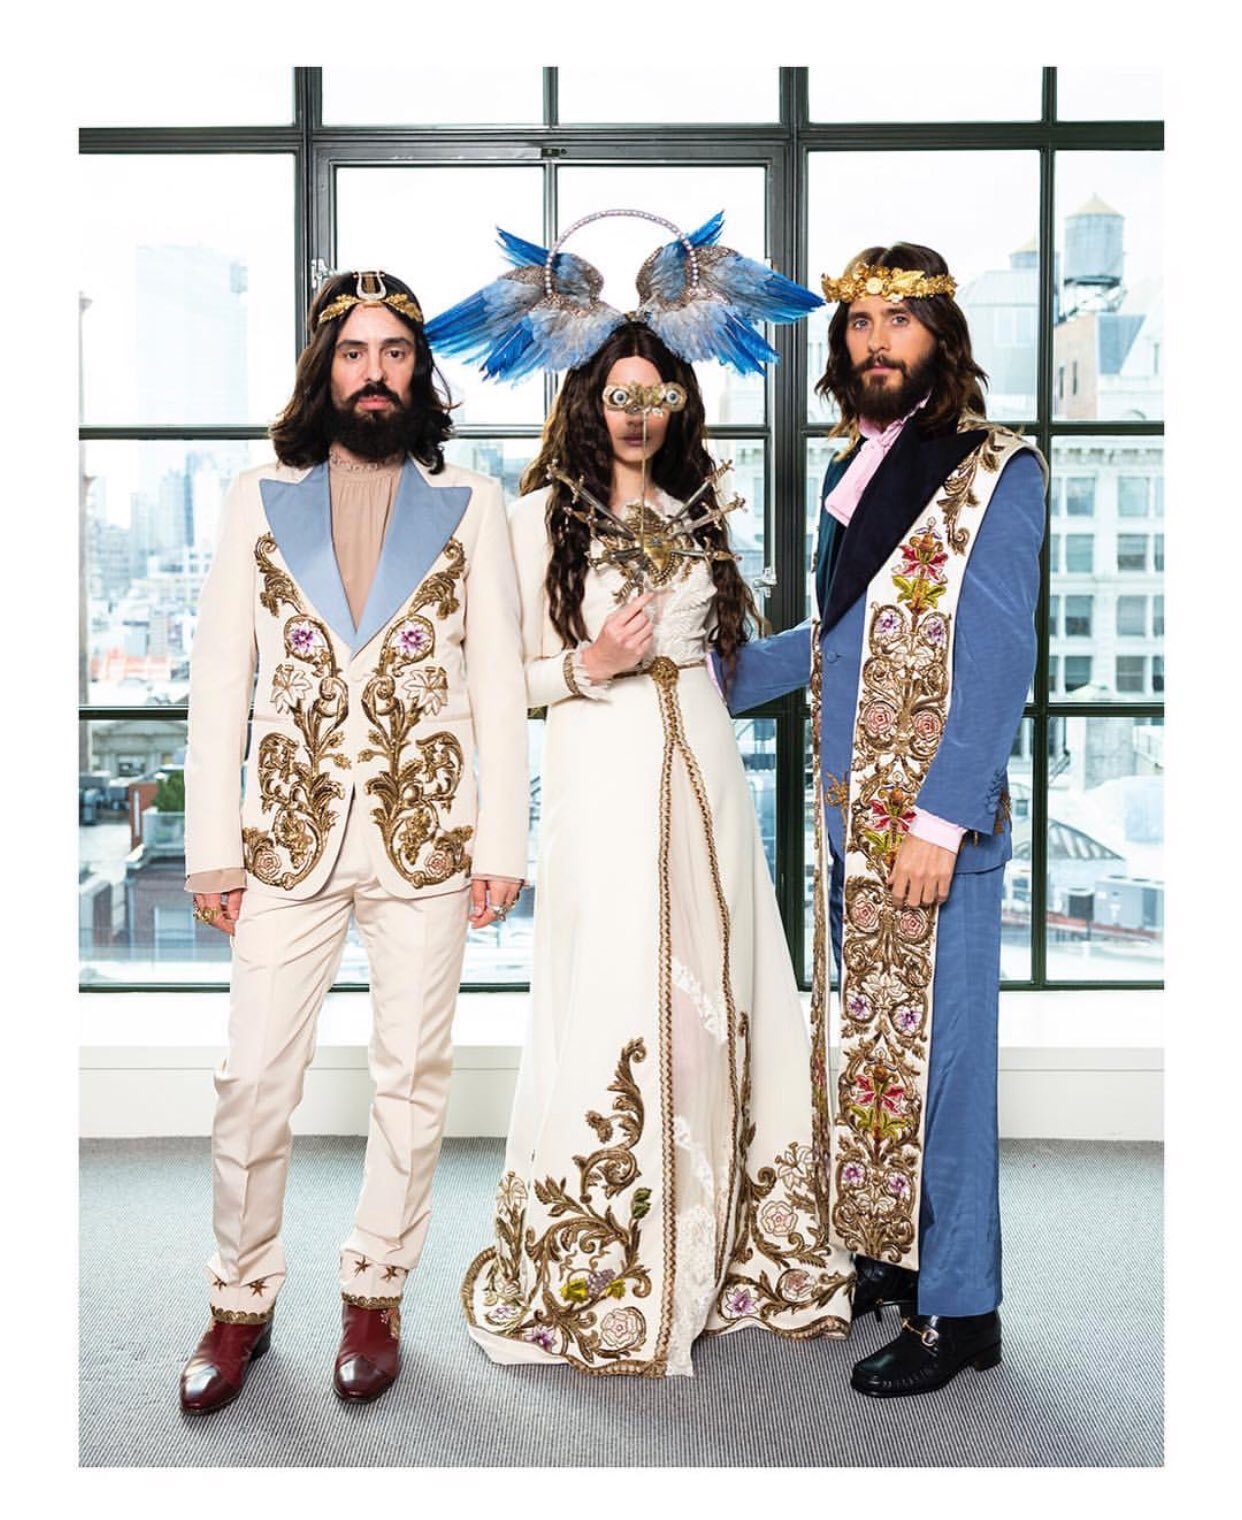 Alessandro Michele, Lana Del Rey and Jared Leto